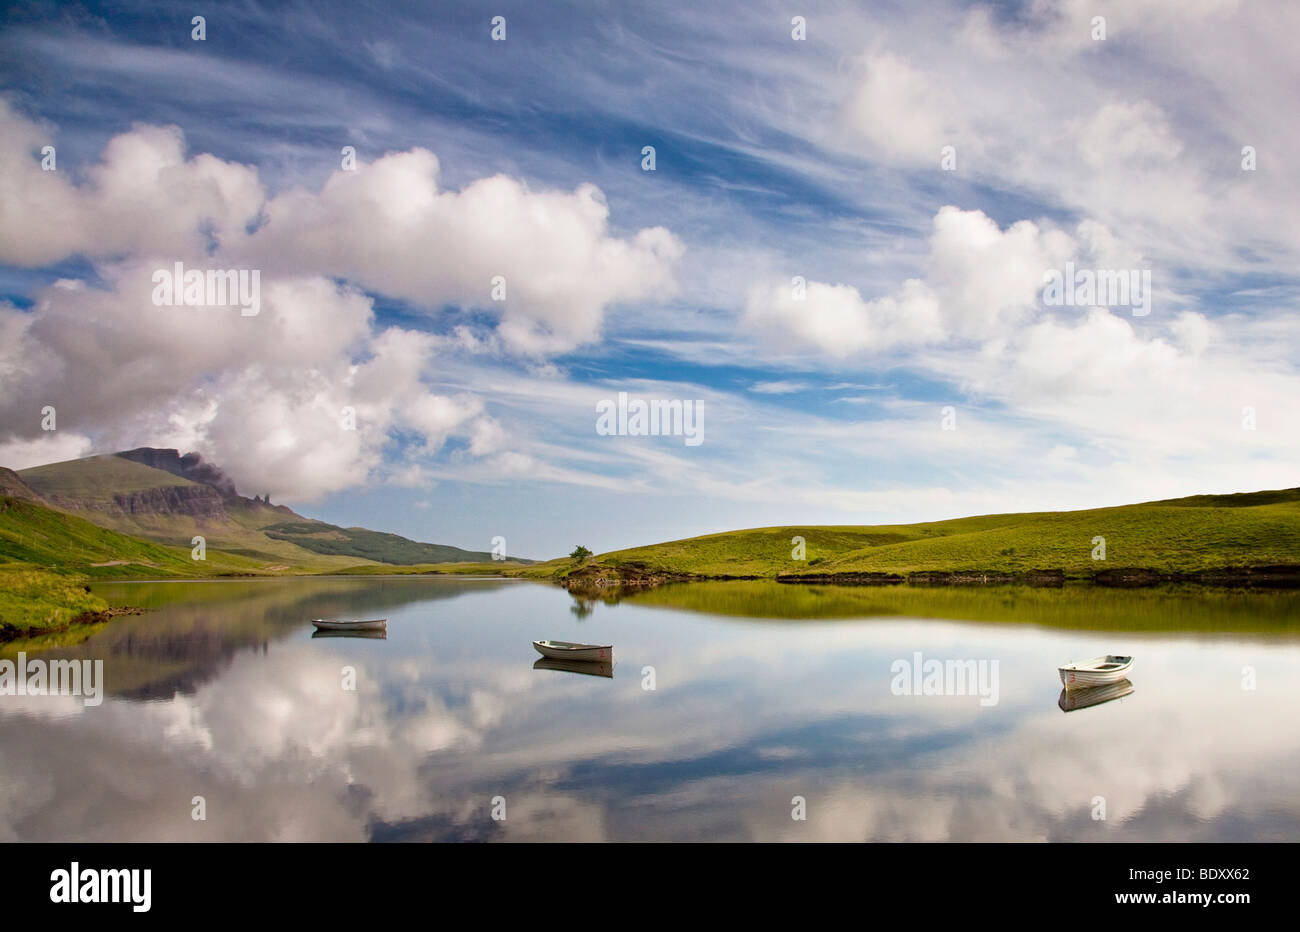 Loch Fada, in the back the Old Man of Storr mountain, Isle of Skye, Scotland, UK, Europe Stock Photo